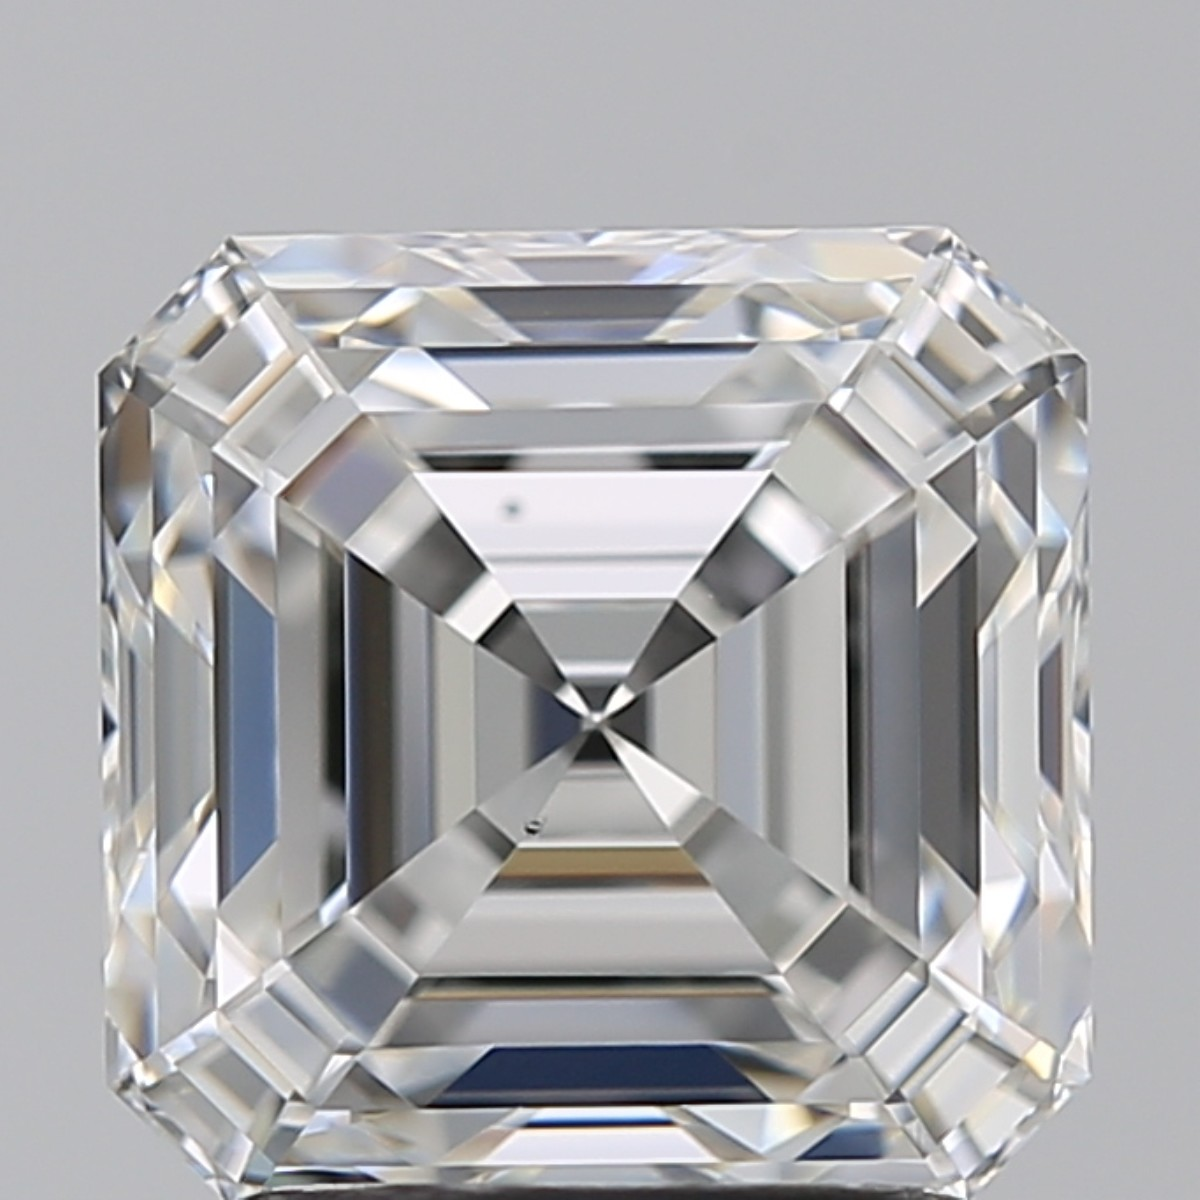 2.54 Carat Asscher Diamond (G/VS1)